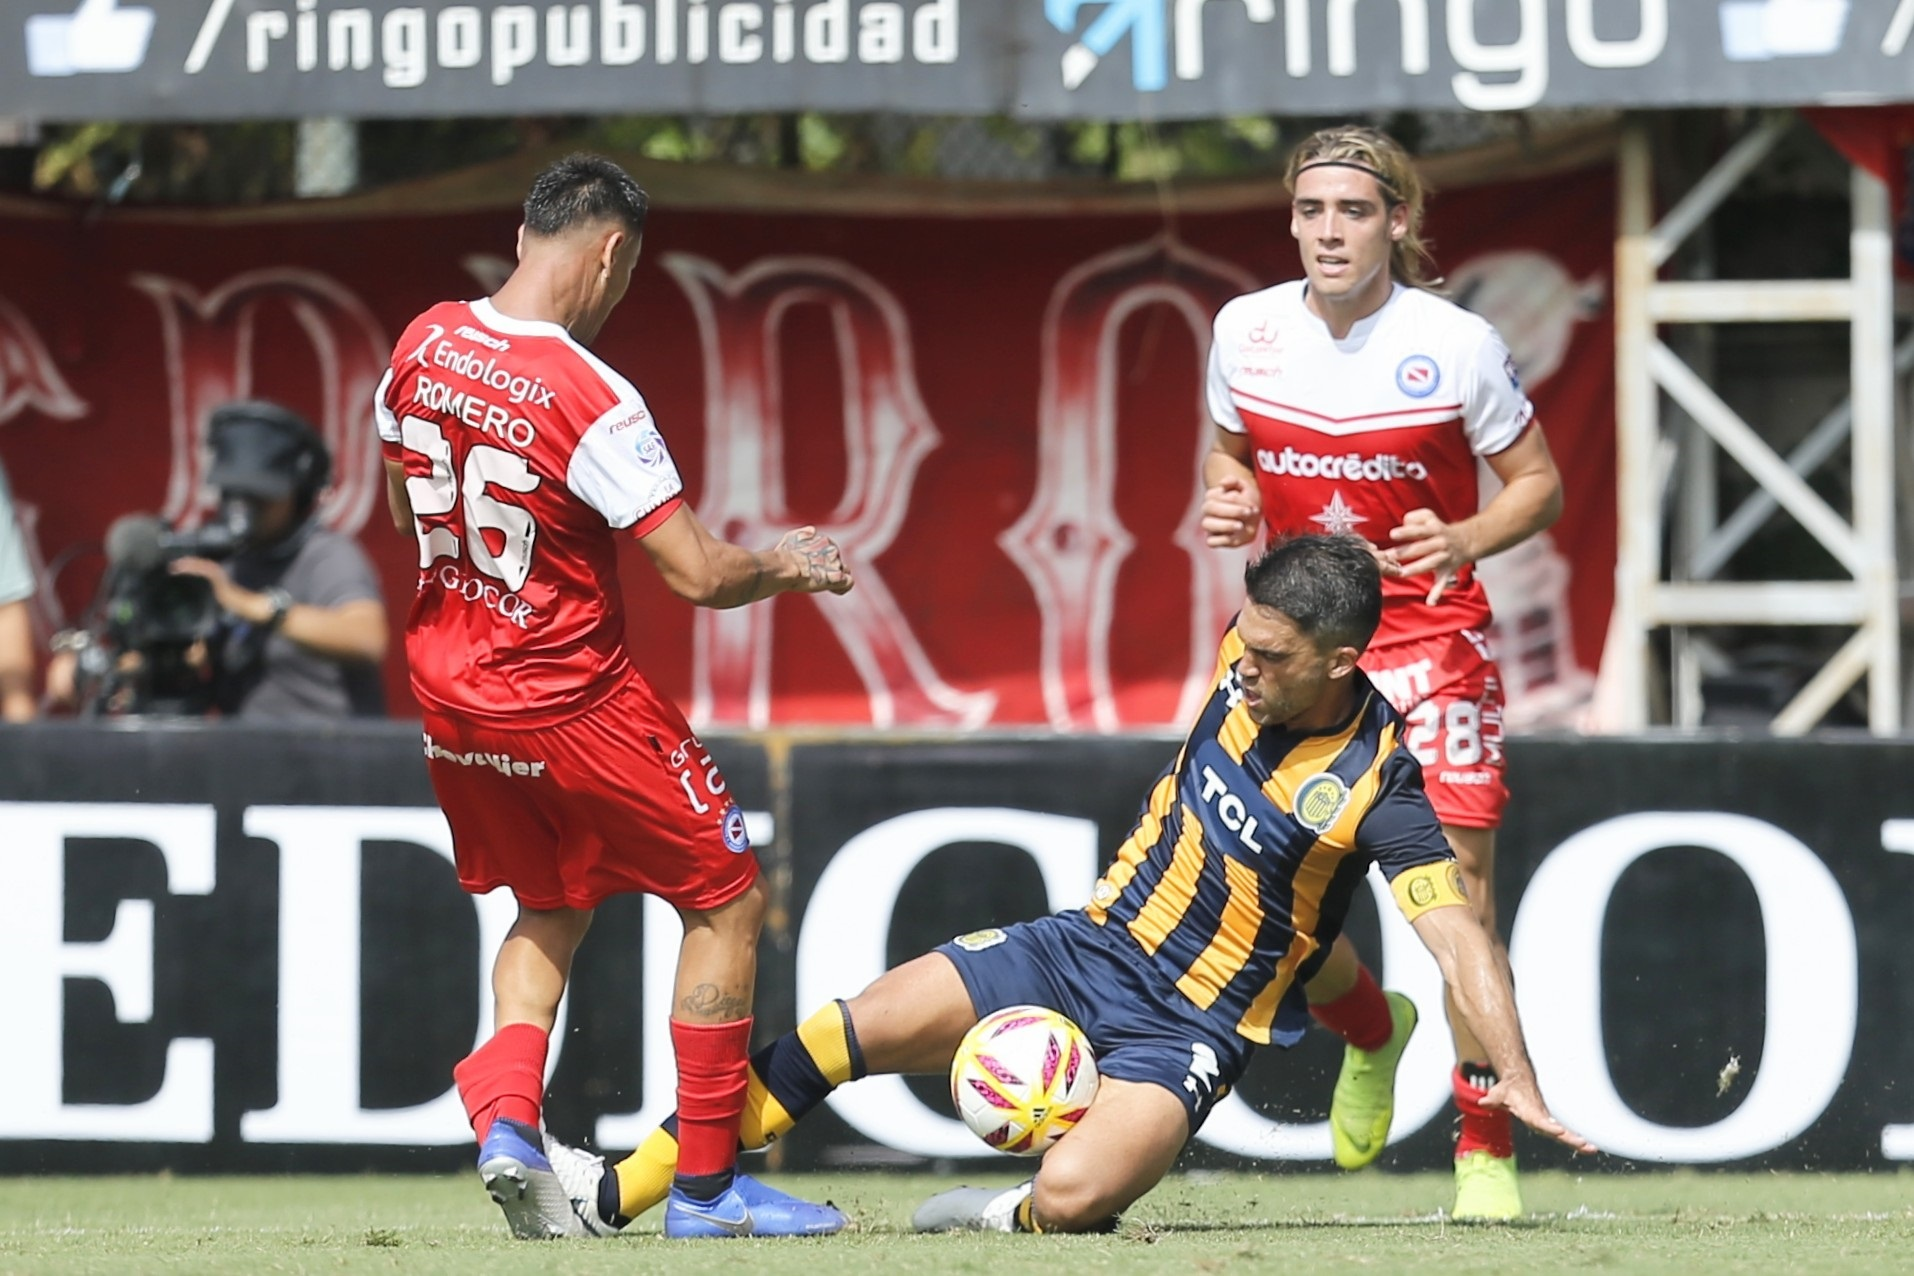 Rosario Central vs. Independiente: hora, TV y formaciones